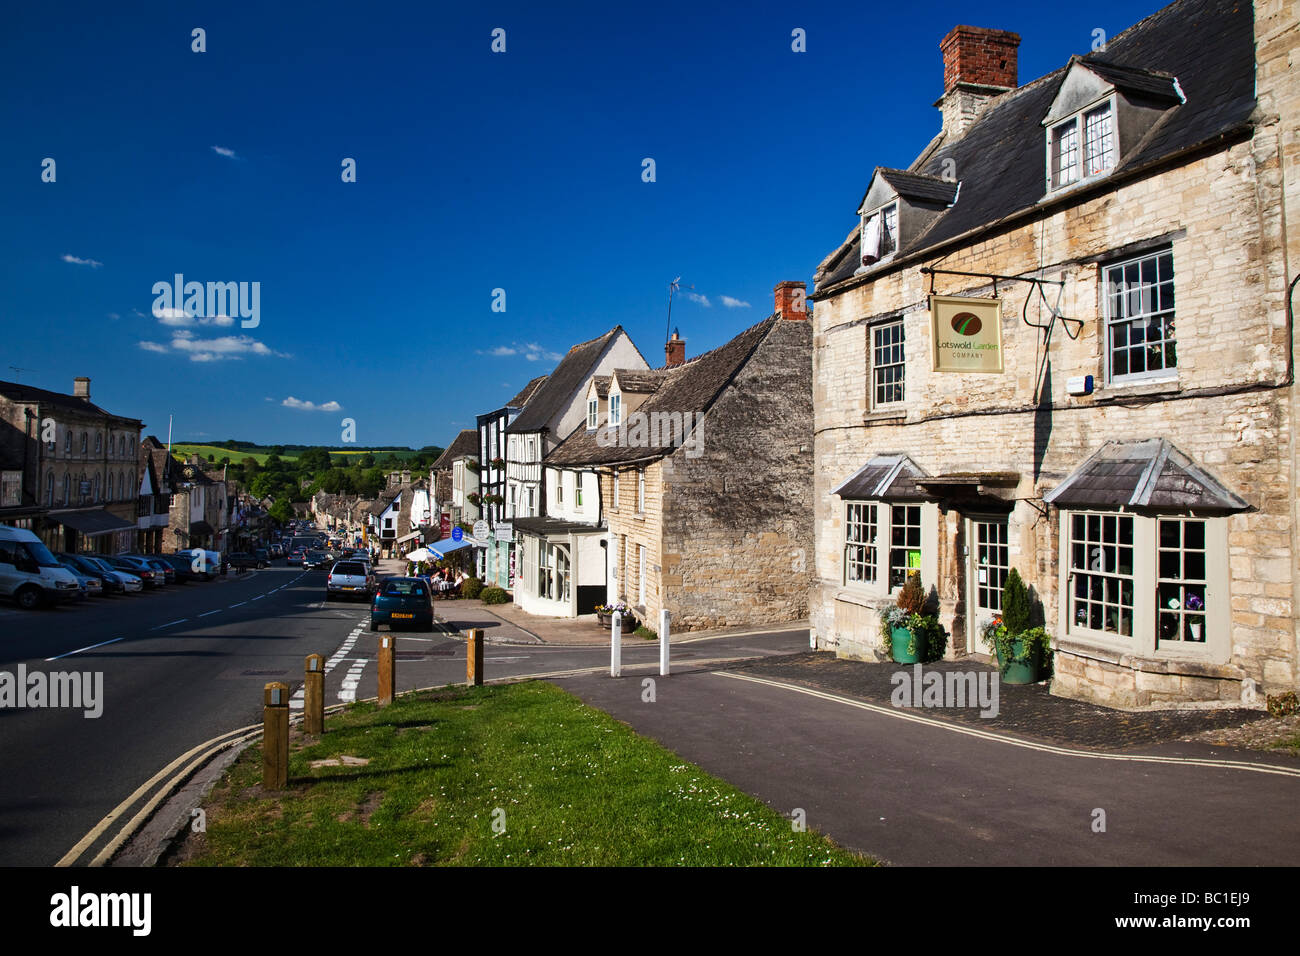 High Street Burford Oxfordshire in the Cotswolds - Stock Image